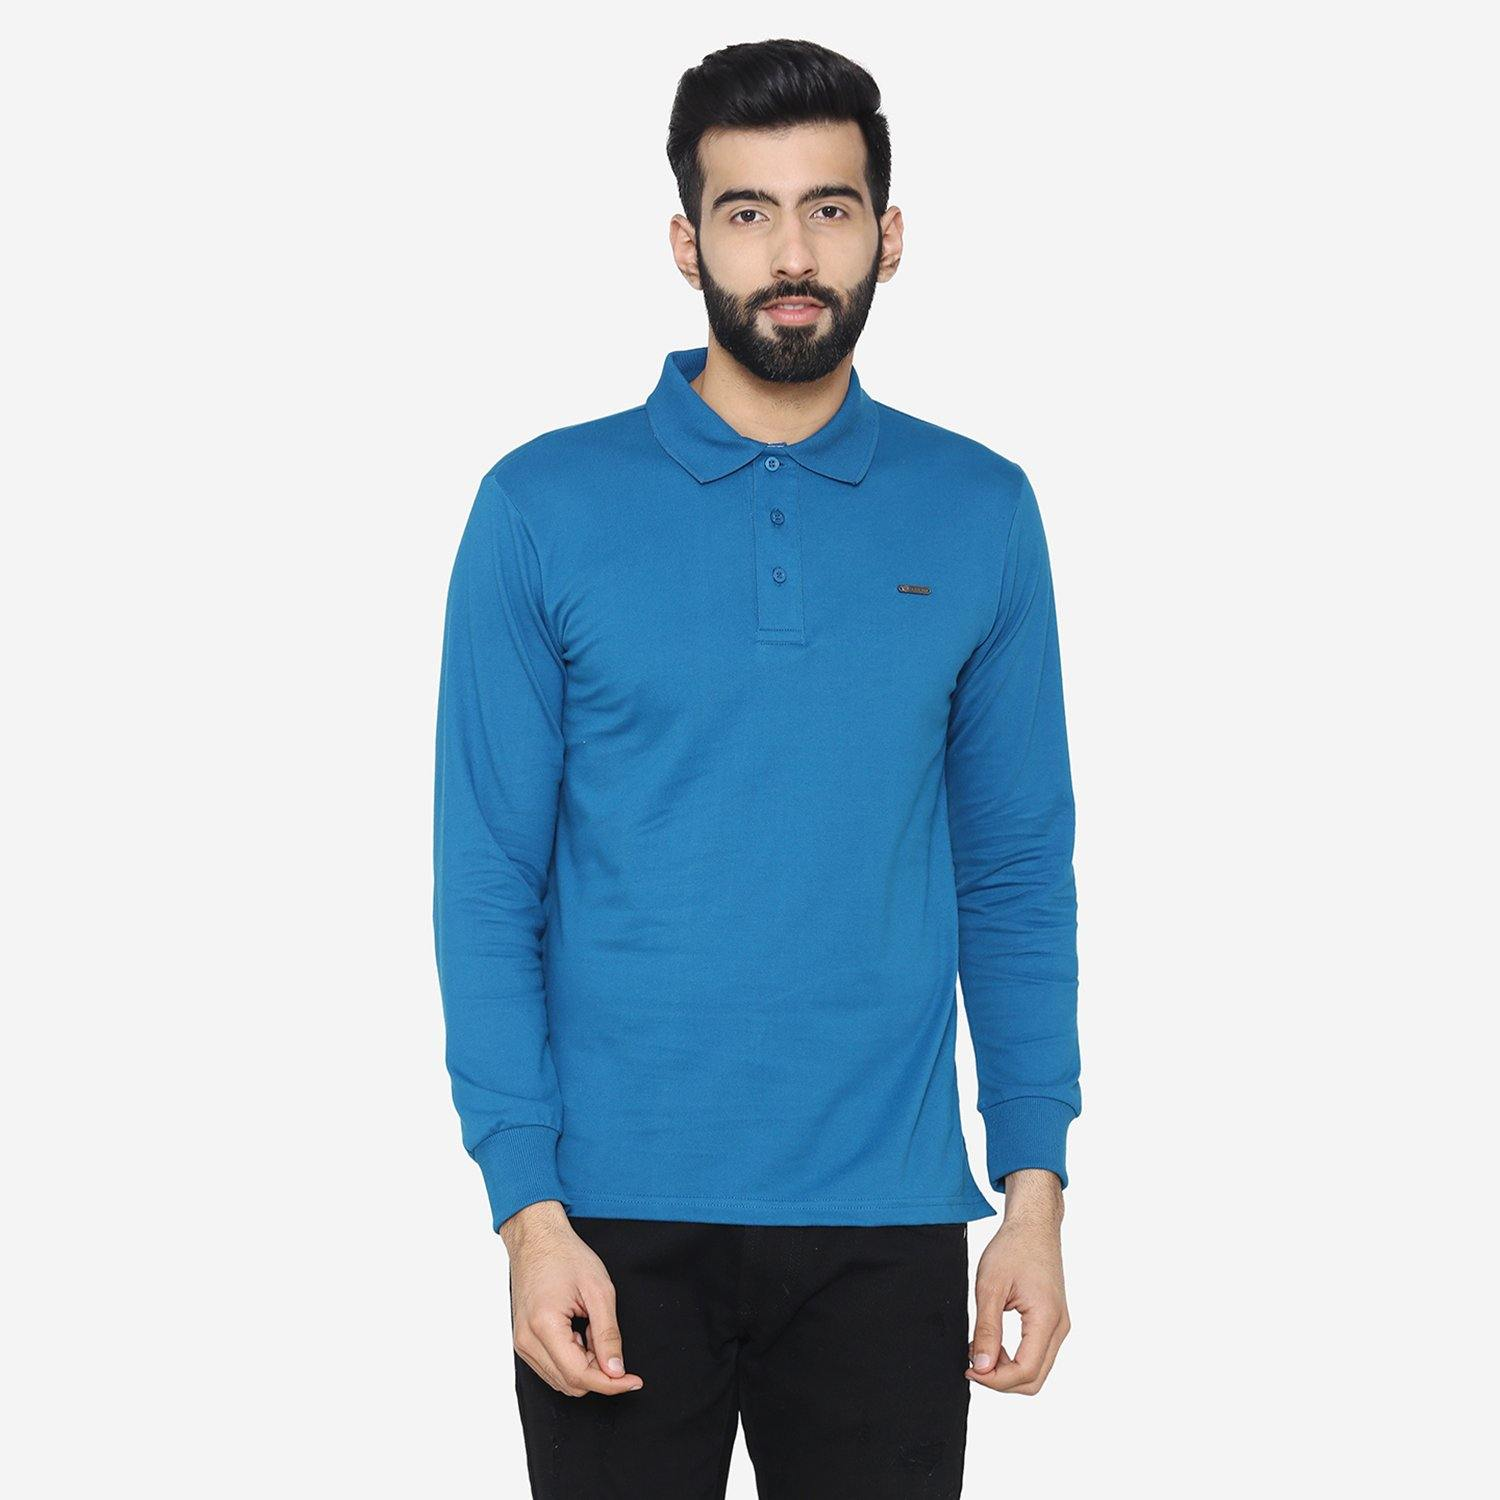 Men's Stylish Polo-Neck Sweatshirt - Blue